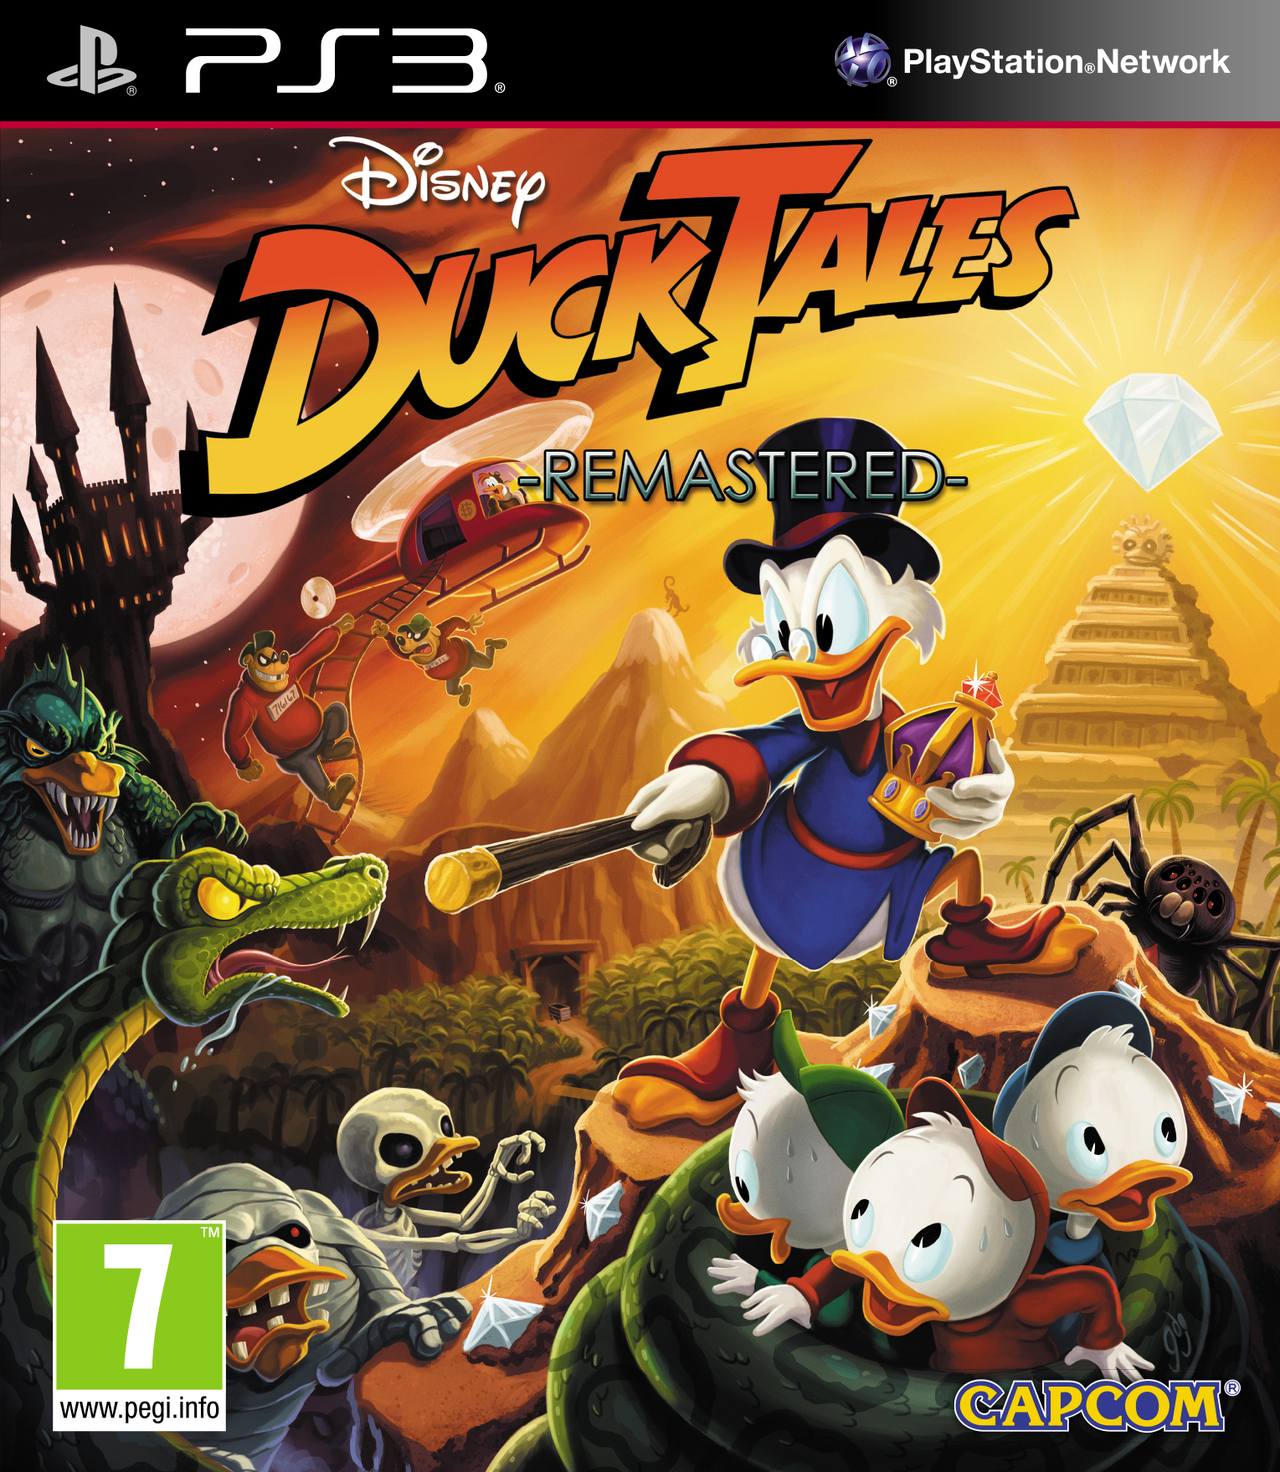 Disney Games For Ps3 : Ducktales remastered sur playstation jeuxvideo